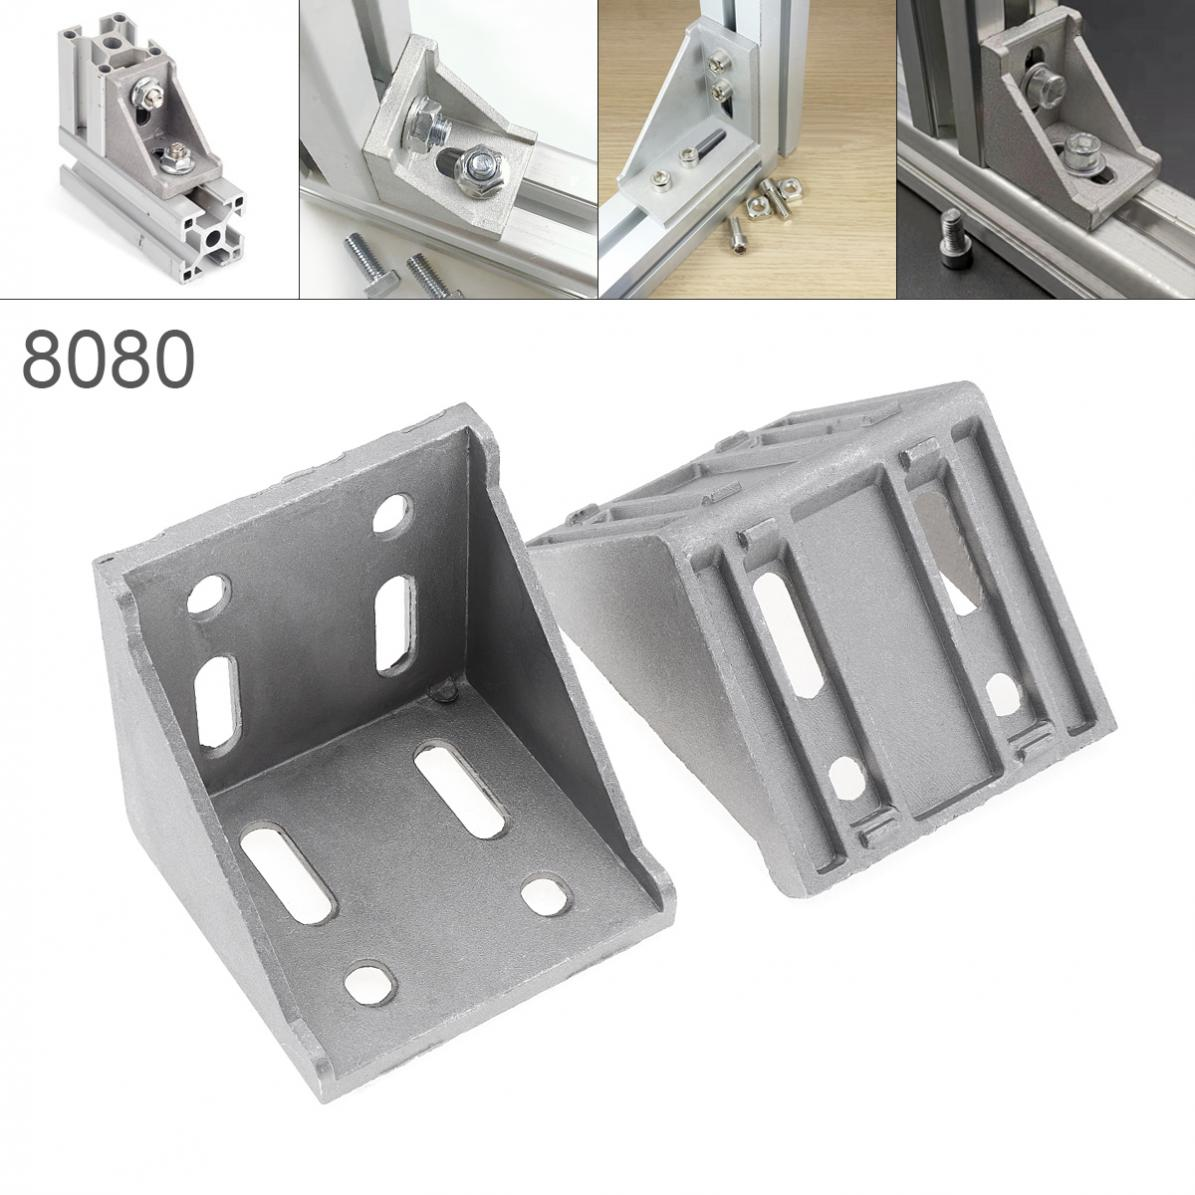 8080 Nuts Aluminum Corner L Shape Right Angle Support Connector Extrusion Industrial Aluminum Profile